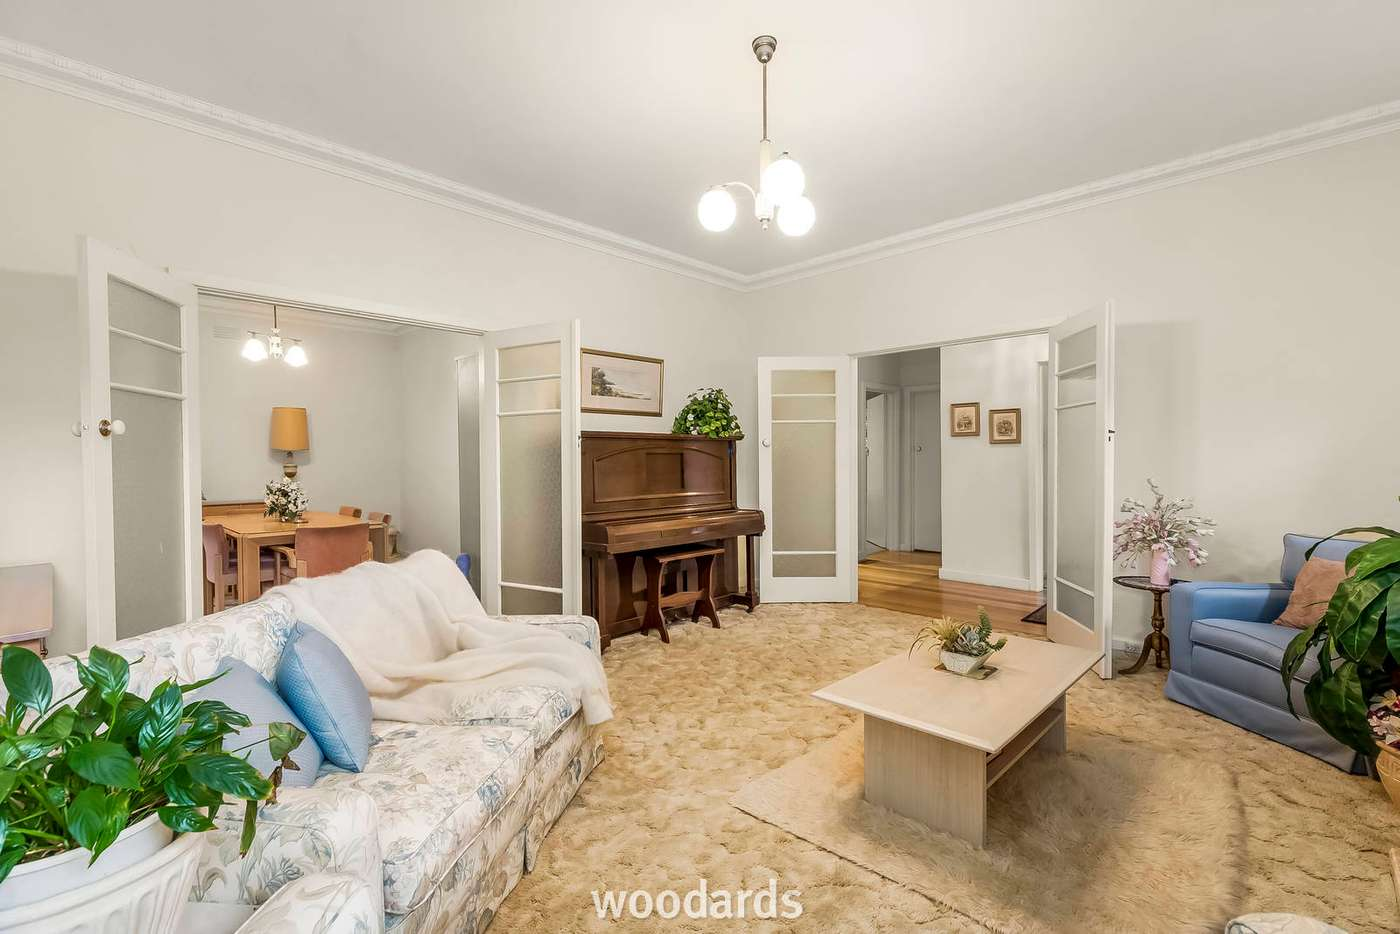 Seventh view of Homely house listing, 115 Doncaster Road, Balwyn North VIC 3104